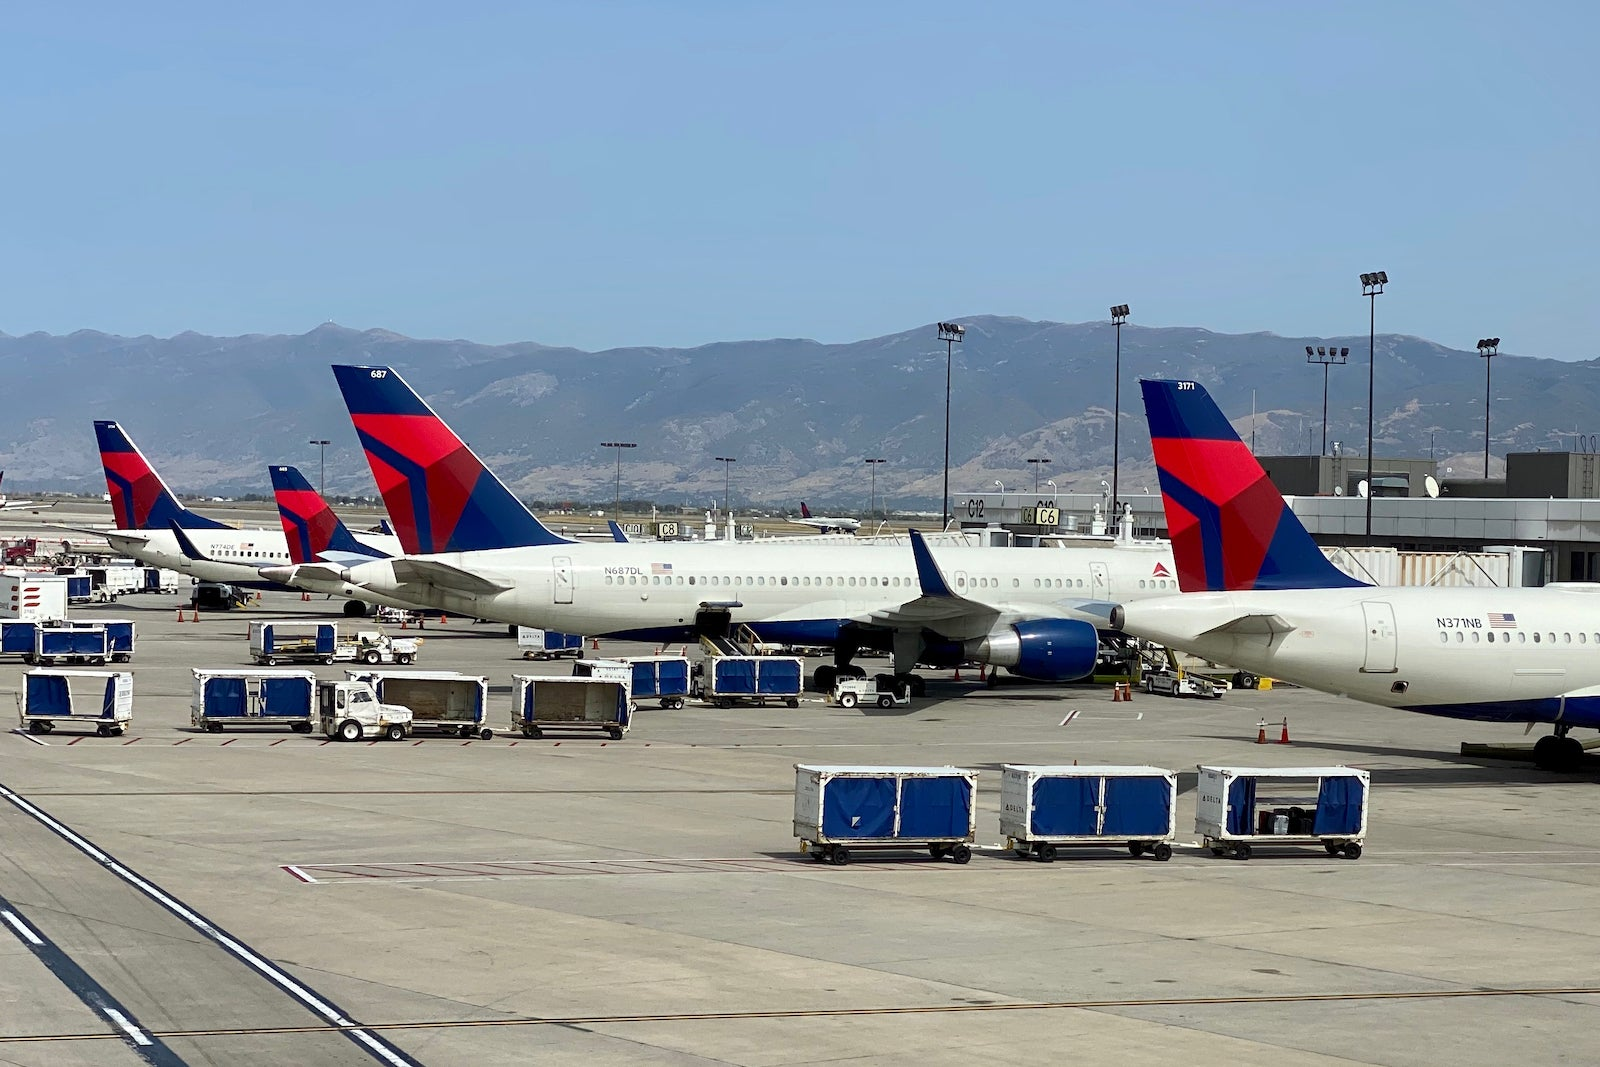 Delta will launch brand-new service to Croatia this summer - The Points Guy